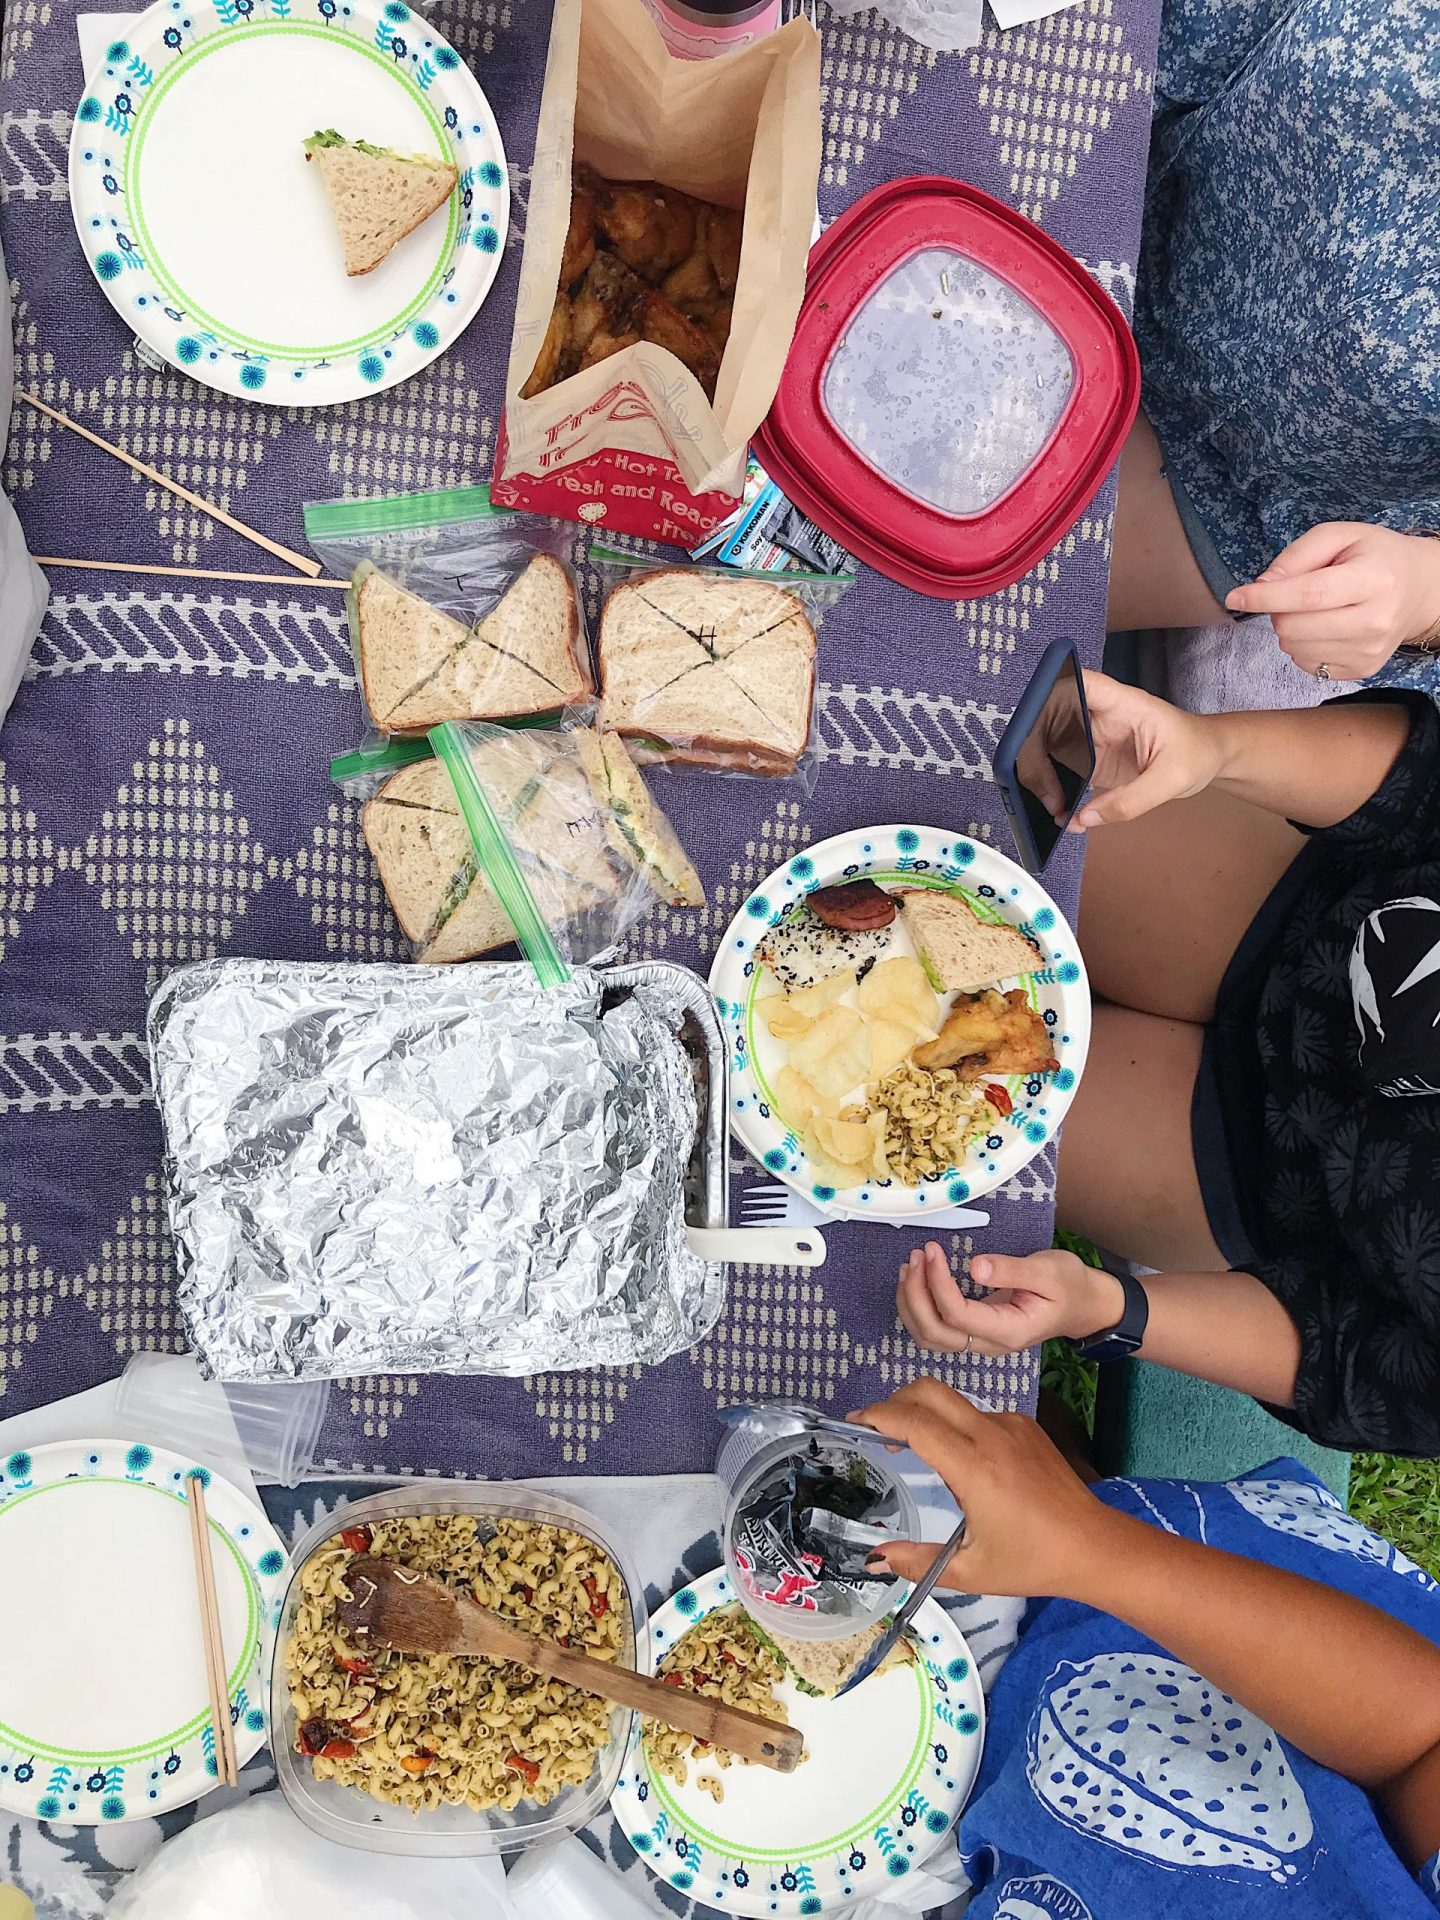 The ultimate birthday picnic spread